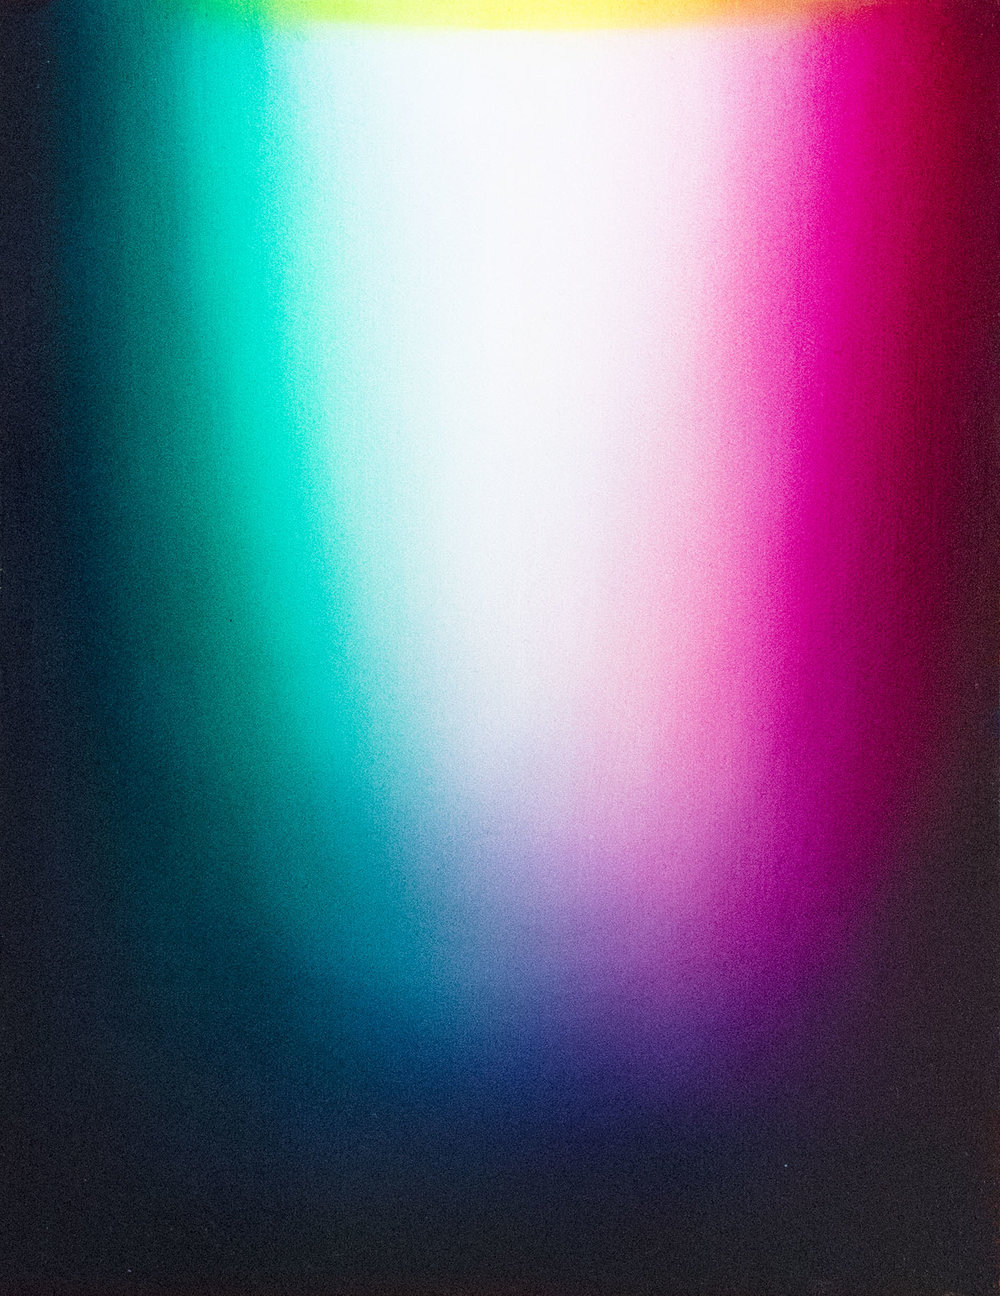 光12號 Light 12  41.2 x 31.5 cm 油彩畫布 Oil on Canvas  2017